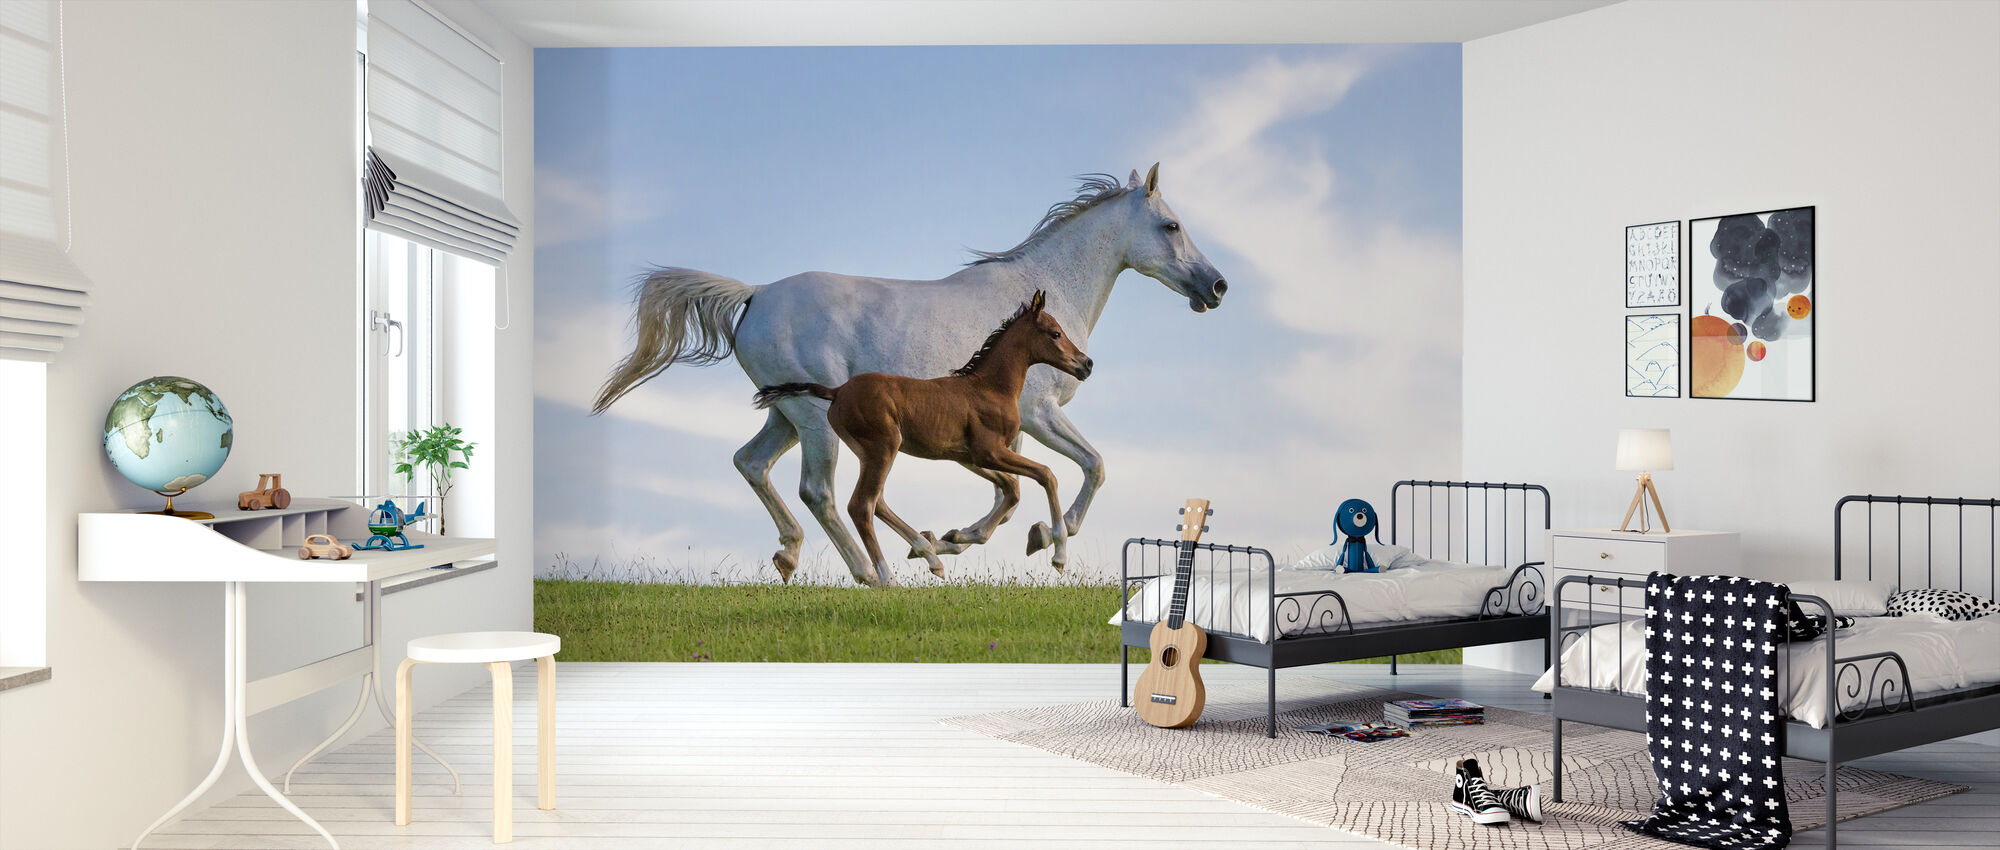 Purebred Arabian Horse Galloping - Wallpaper - Kids Room